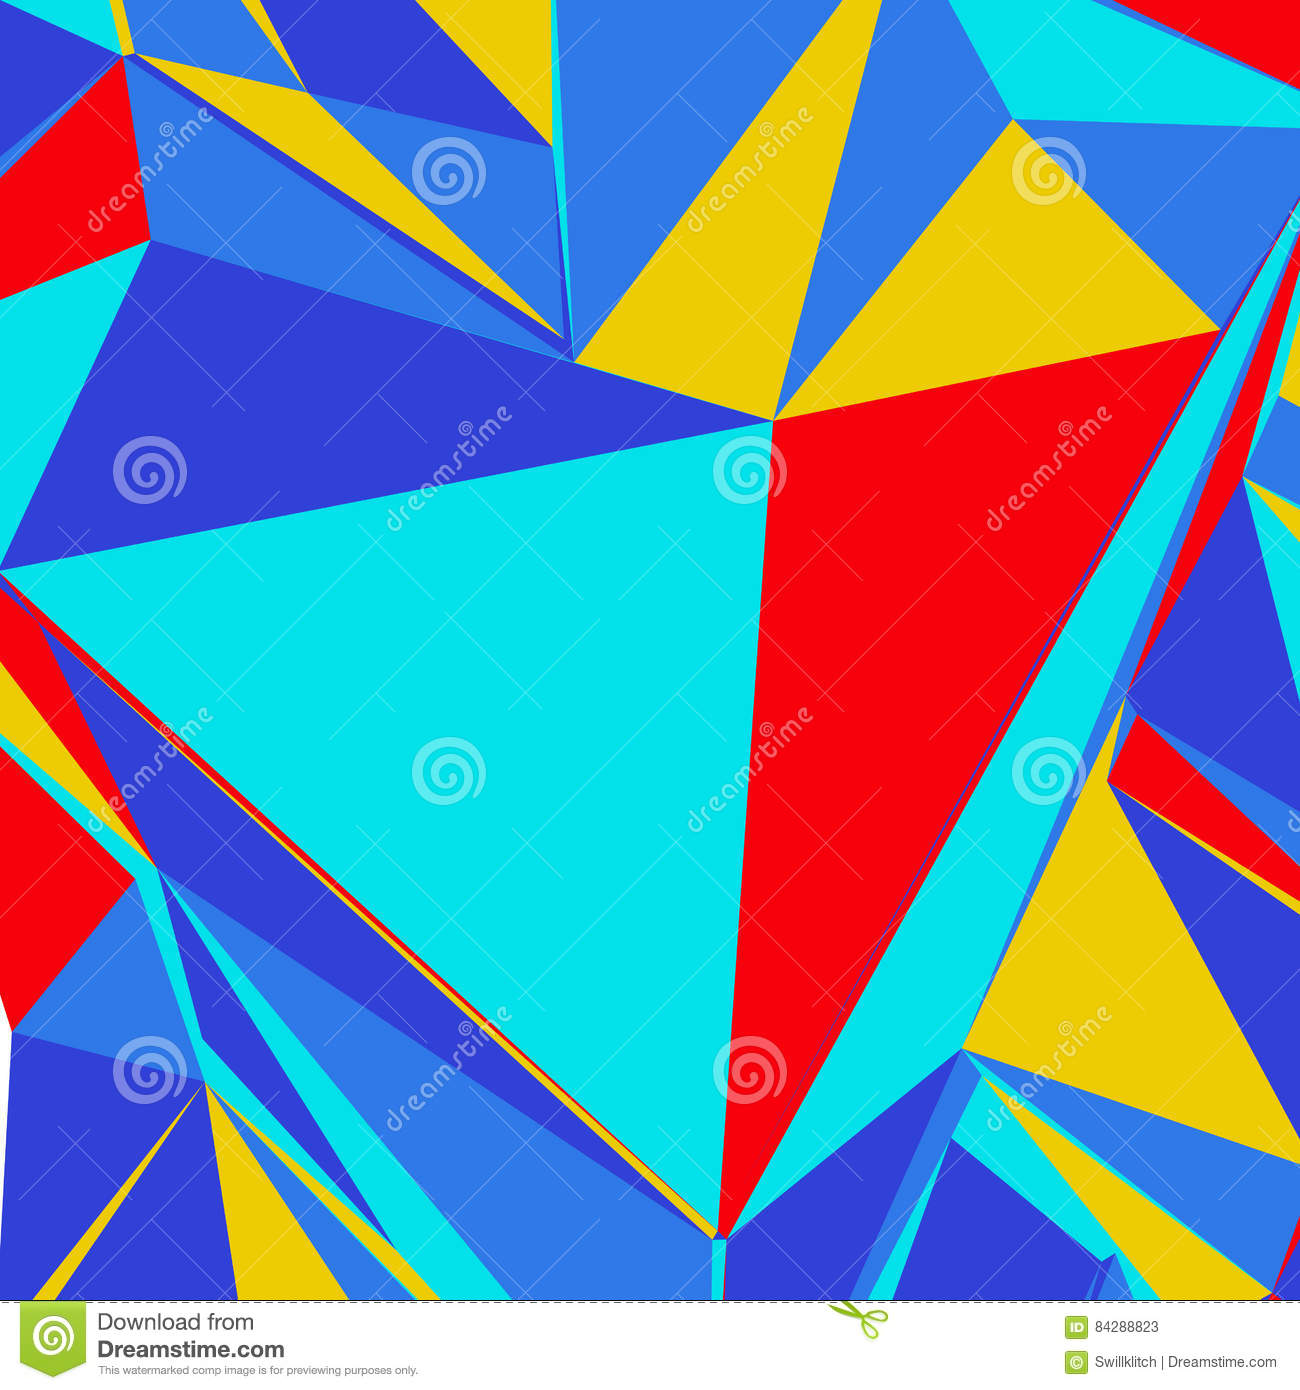 Abstract Background With Colorful Triangles For Magazines, Bookl ...